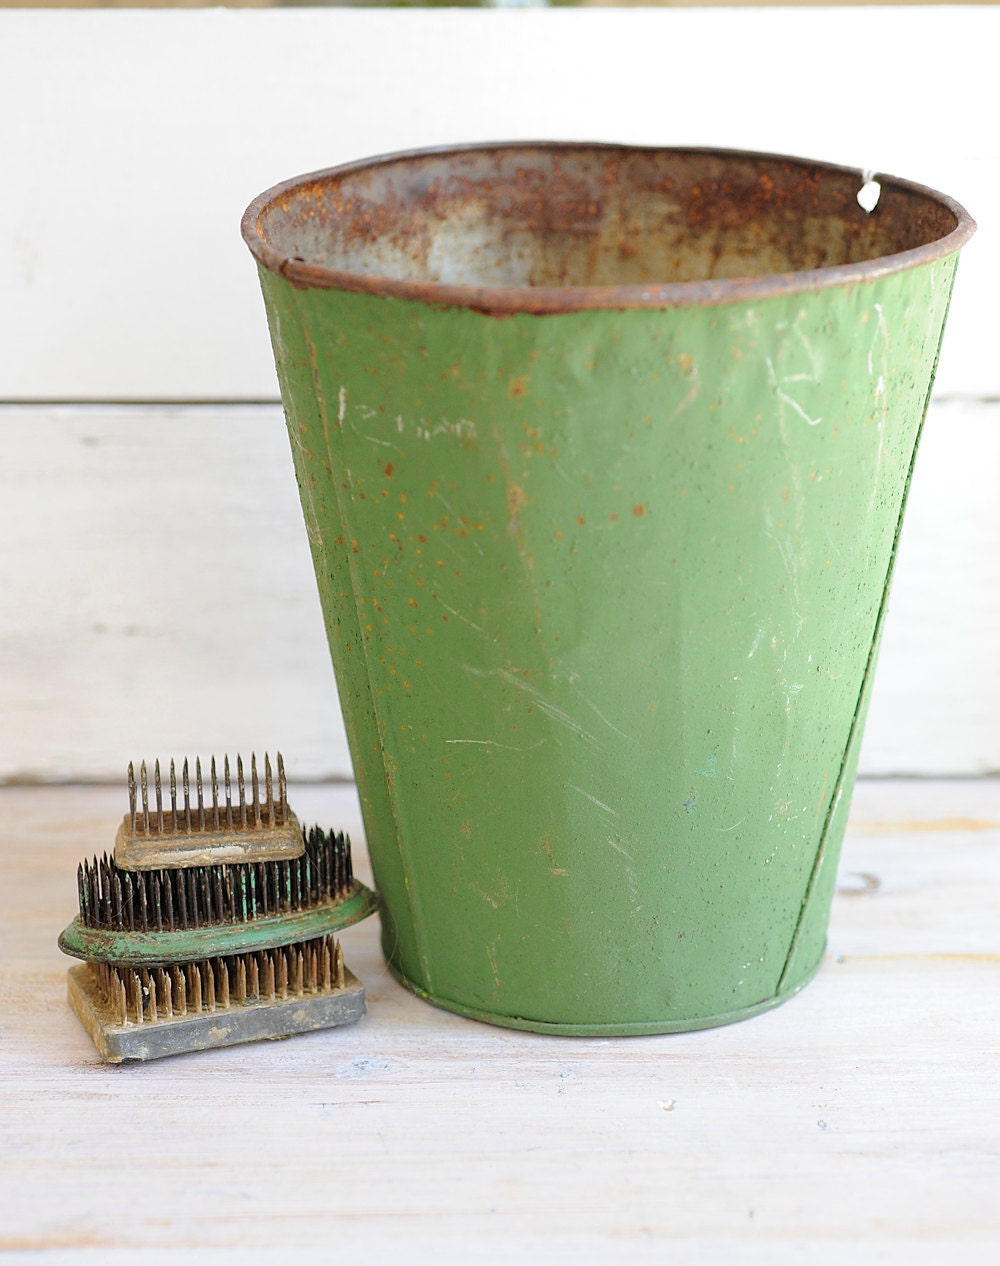 vintage, metal, green, country decor, rustic decor, maple syrup, sap bucket